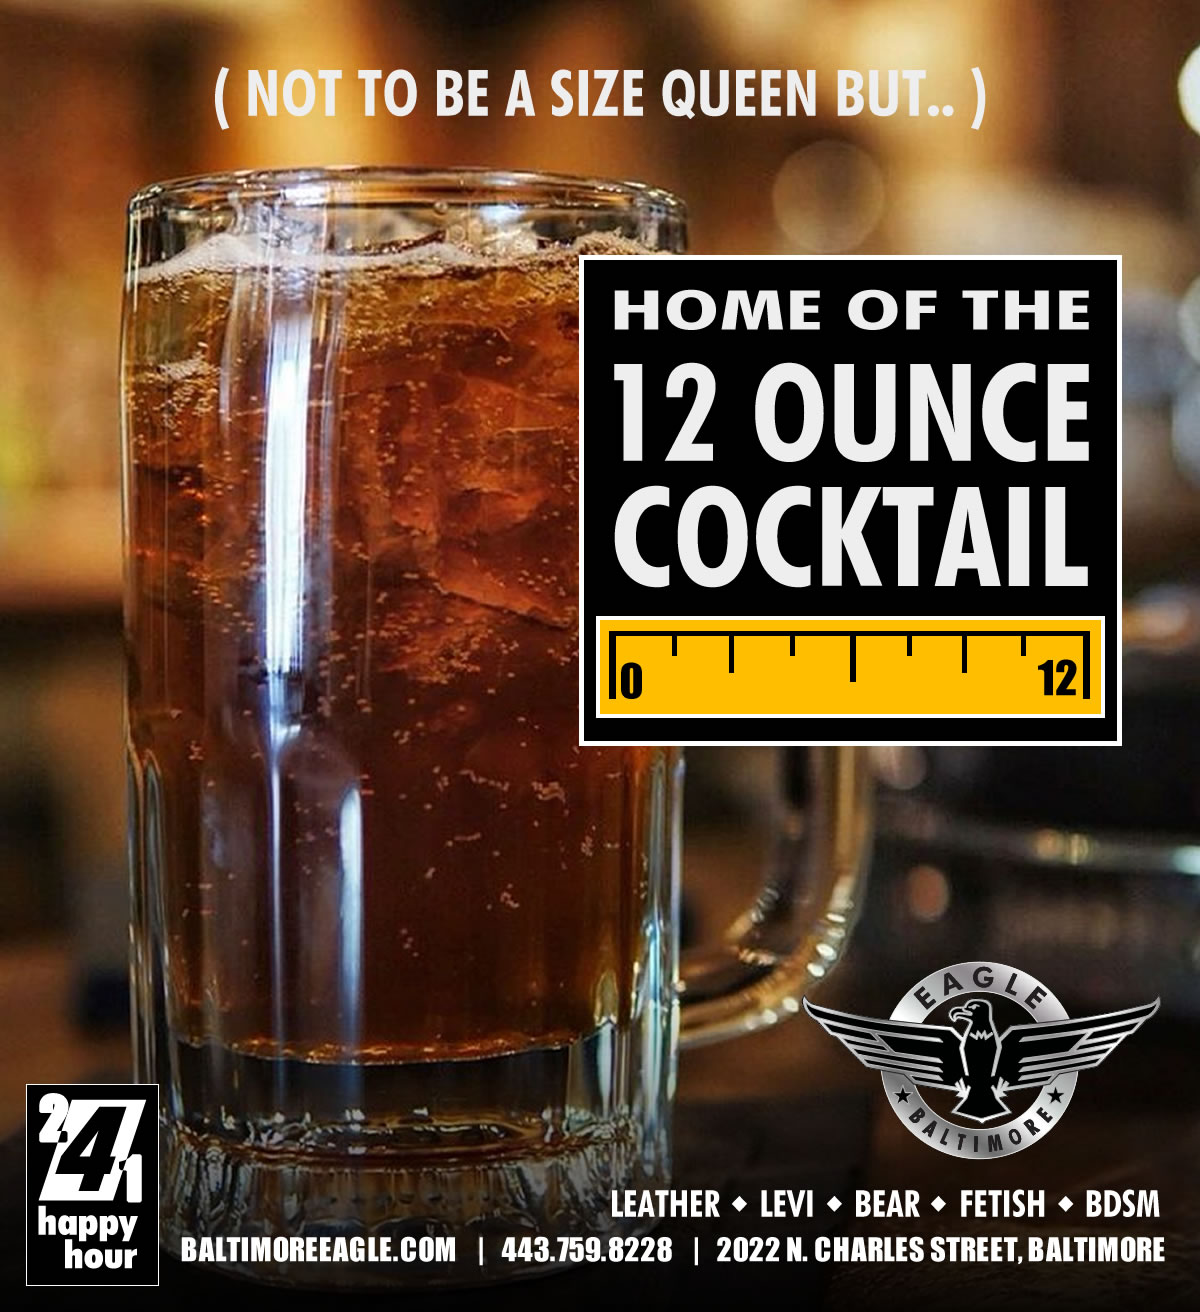 12oz COCKtails - Not to be a size queen or anything..